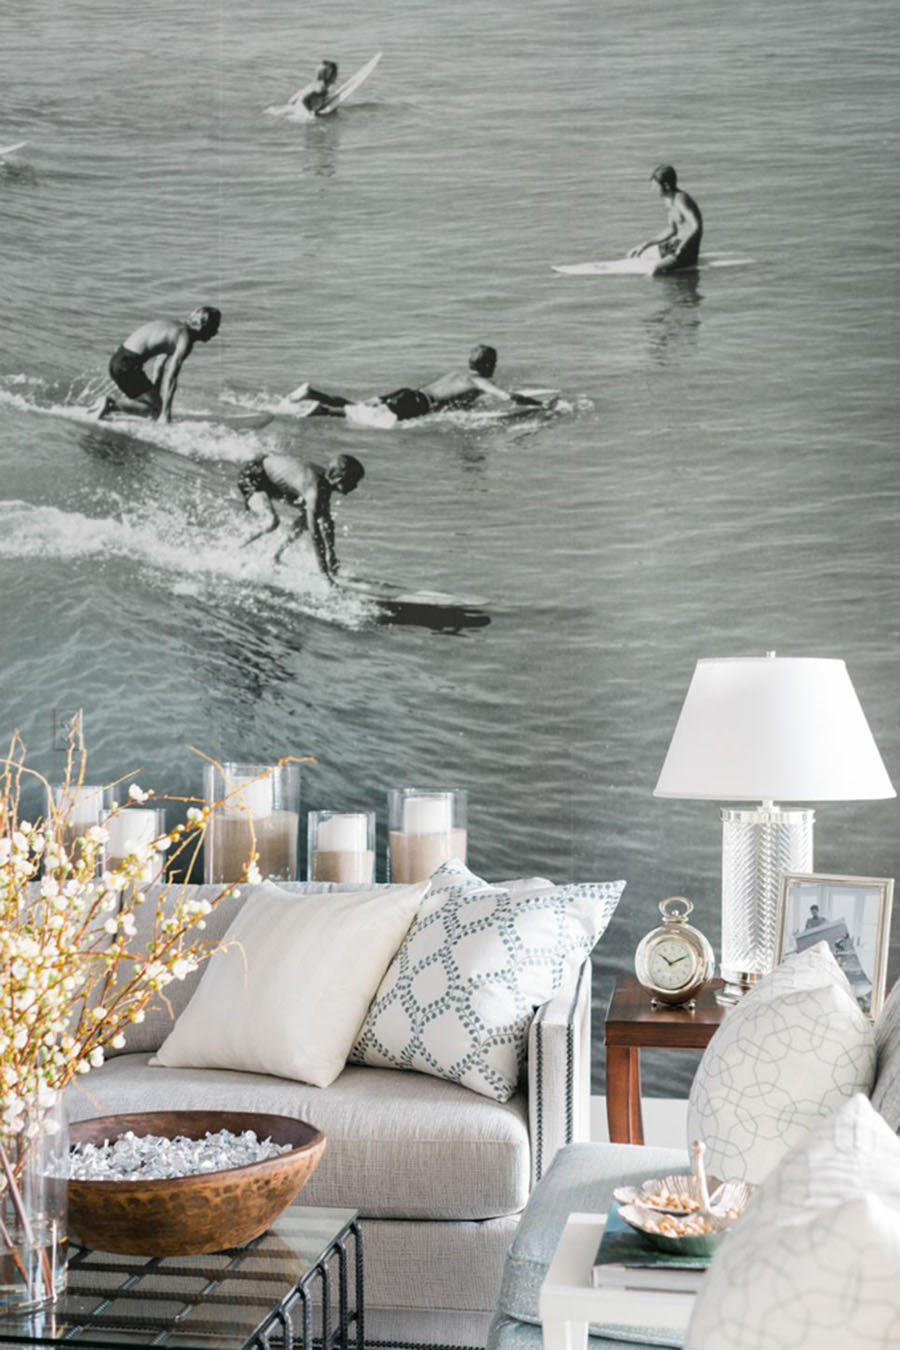 Kv condo wallpaper wall murals a home decor trend i 39 m for Mural room white house